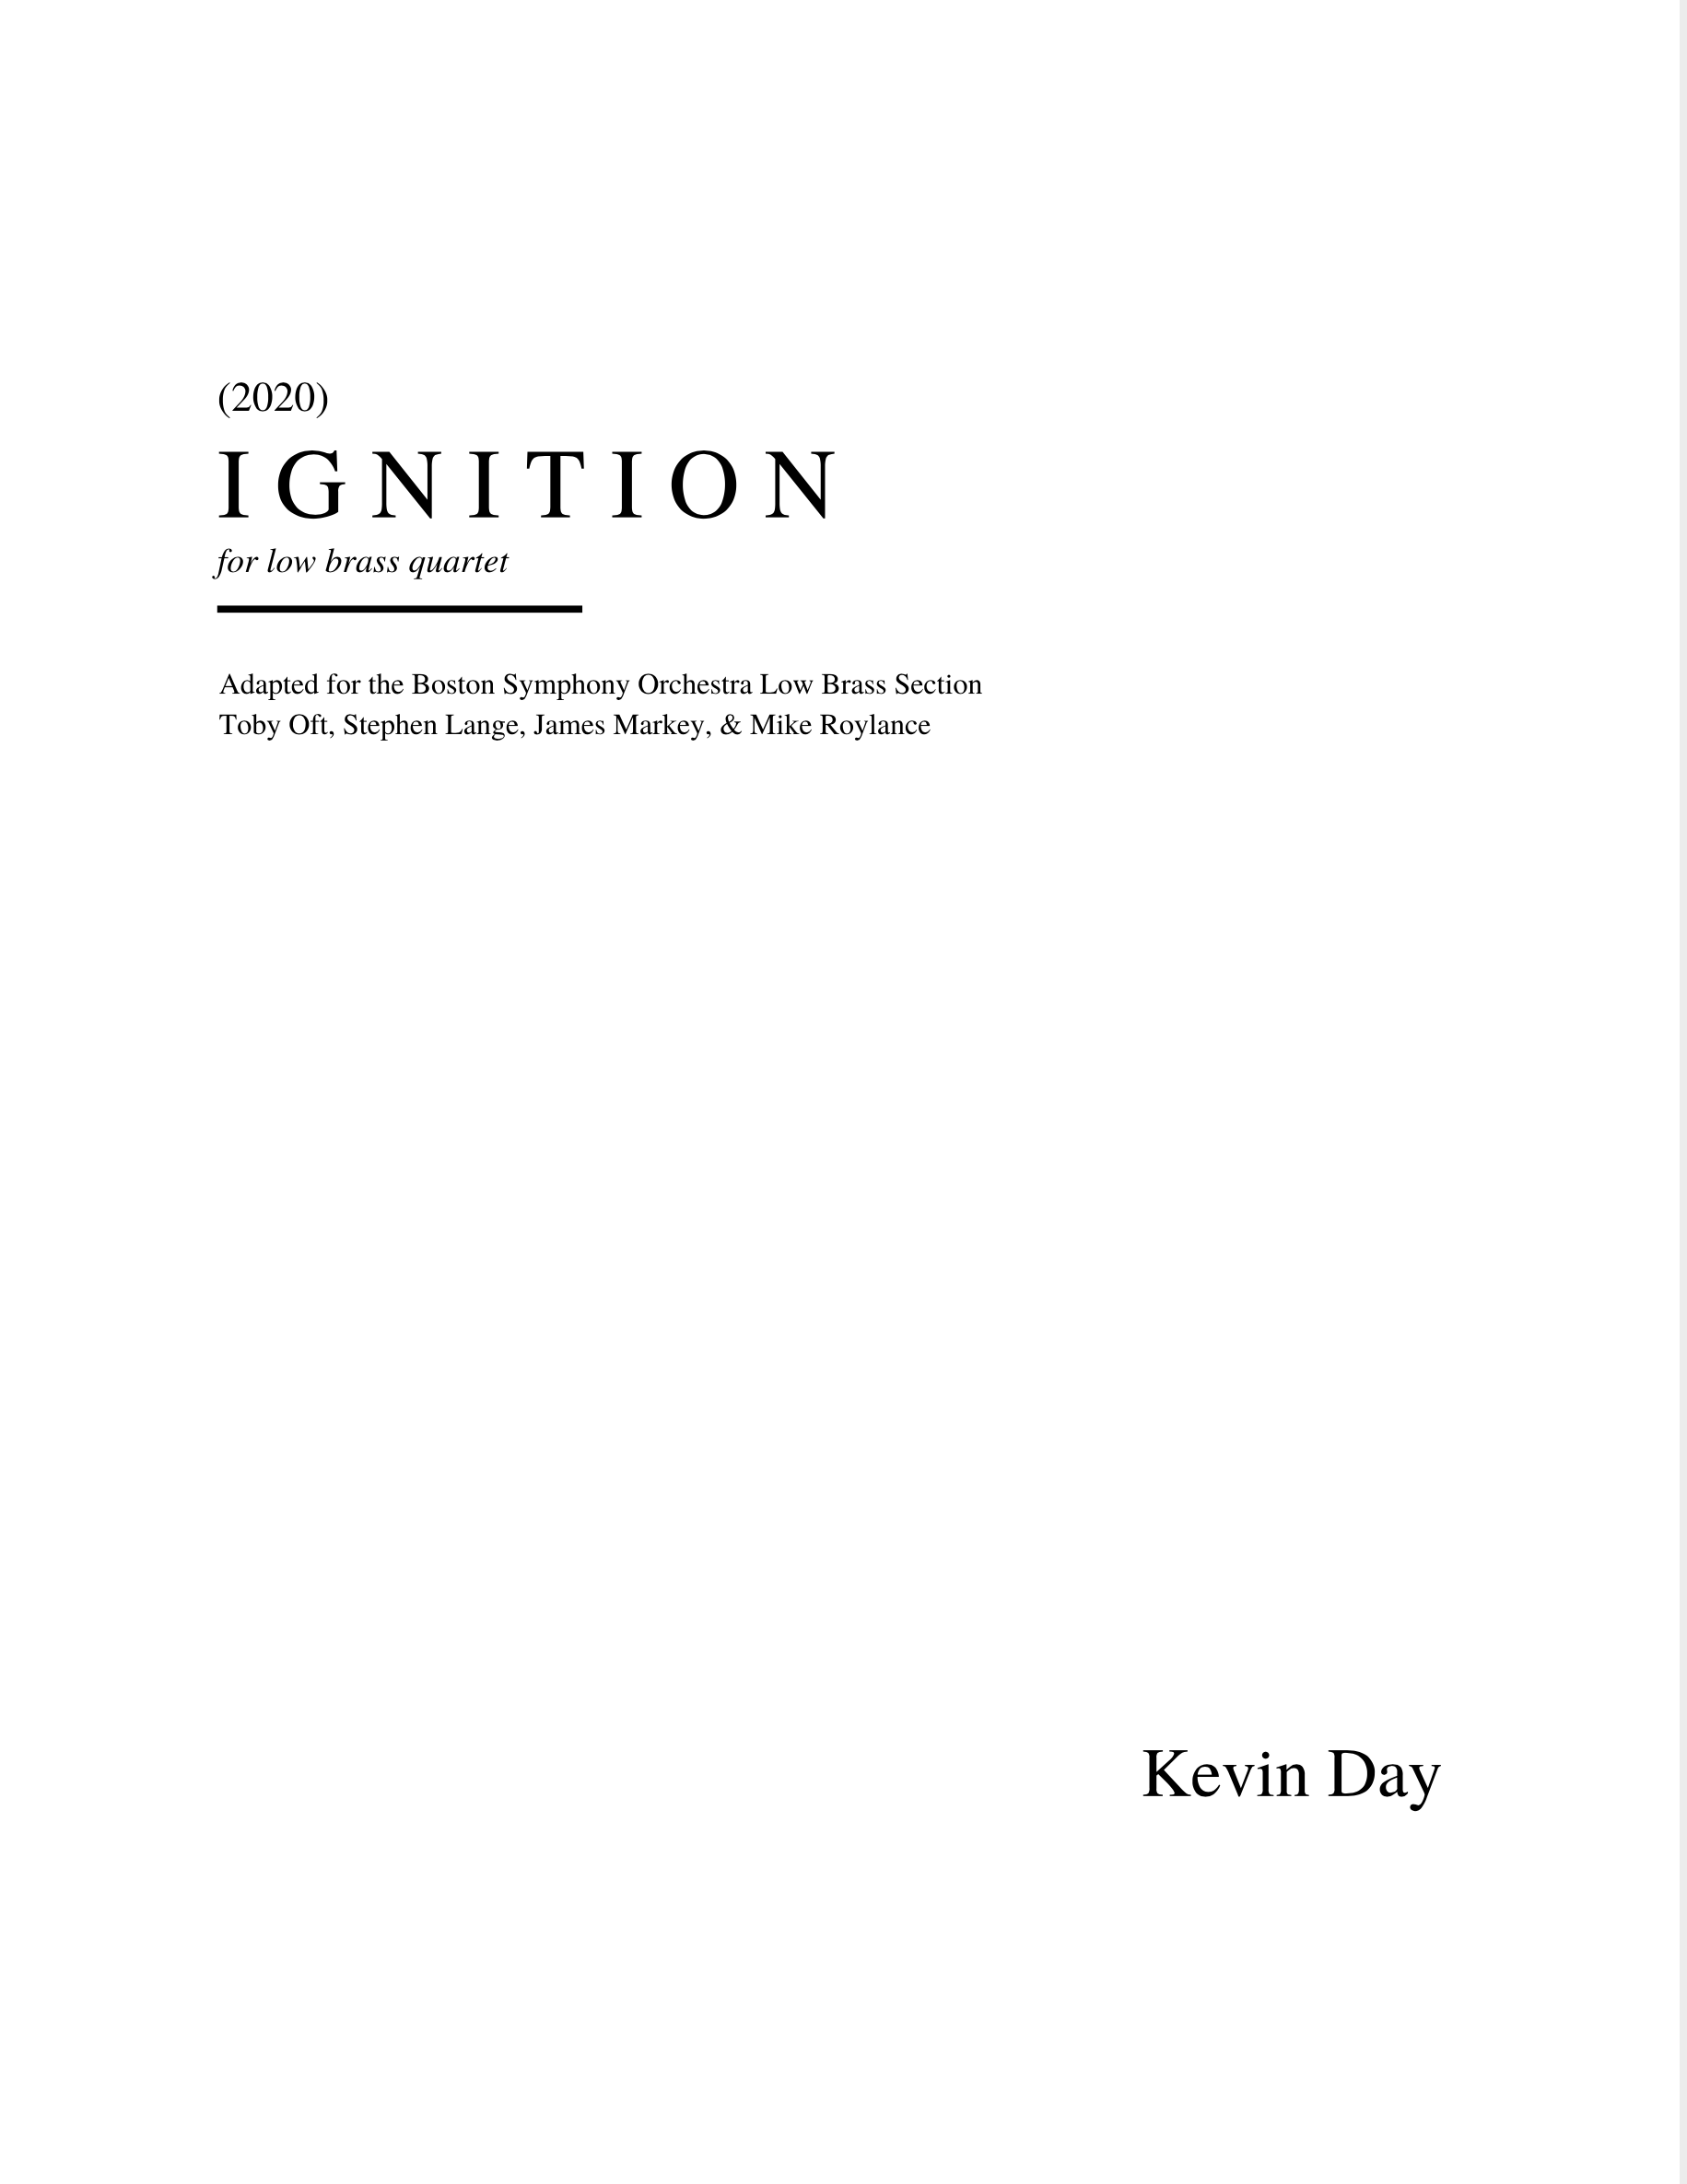 Ignition (PDF Version) by Kevin Day